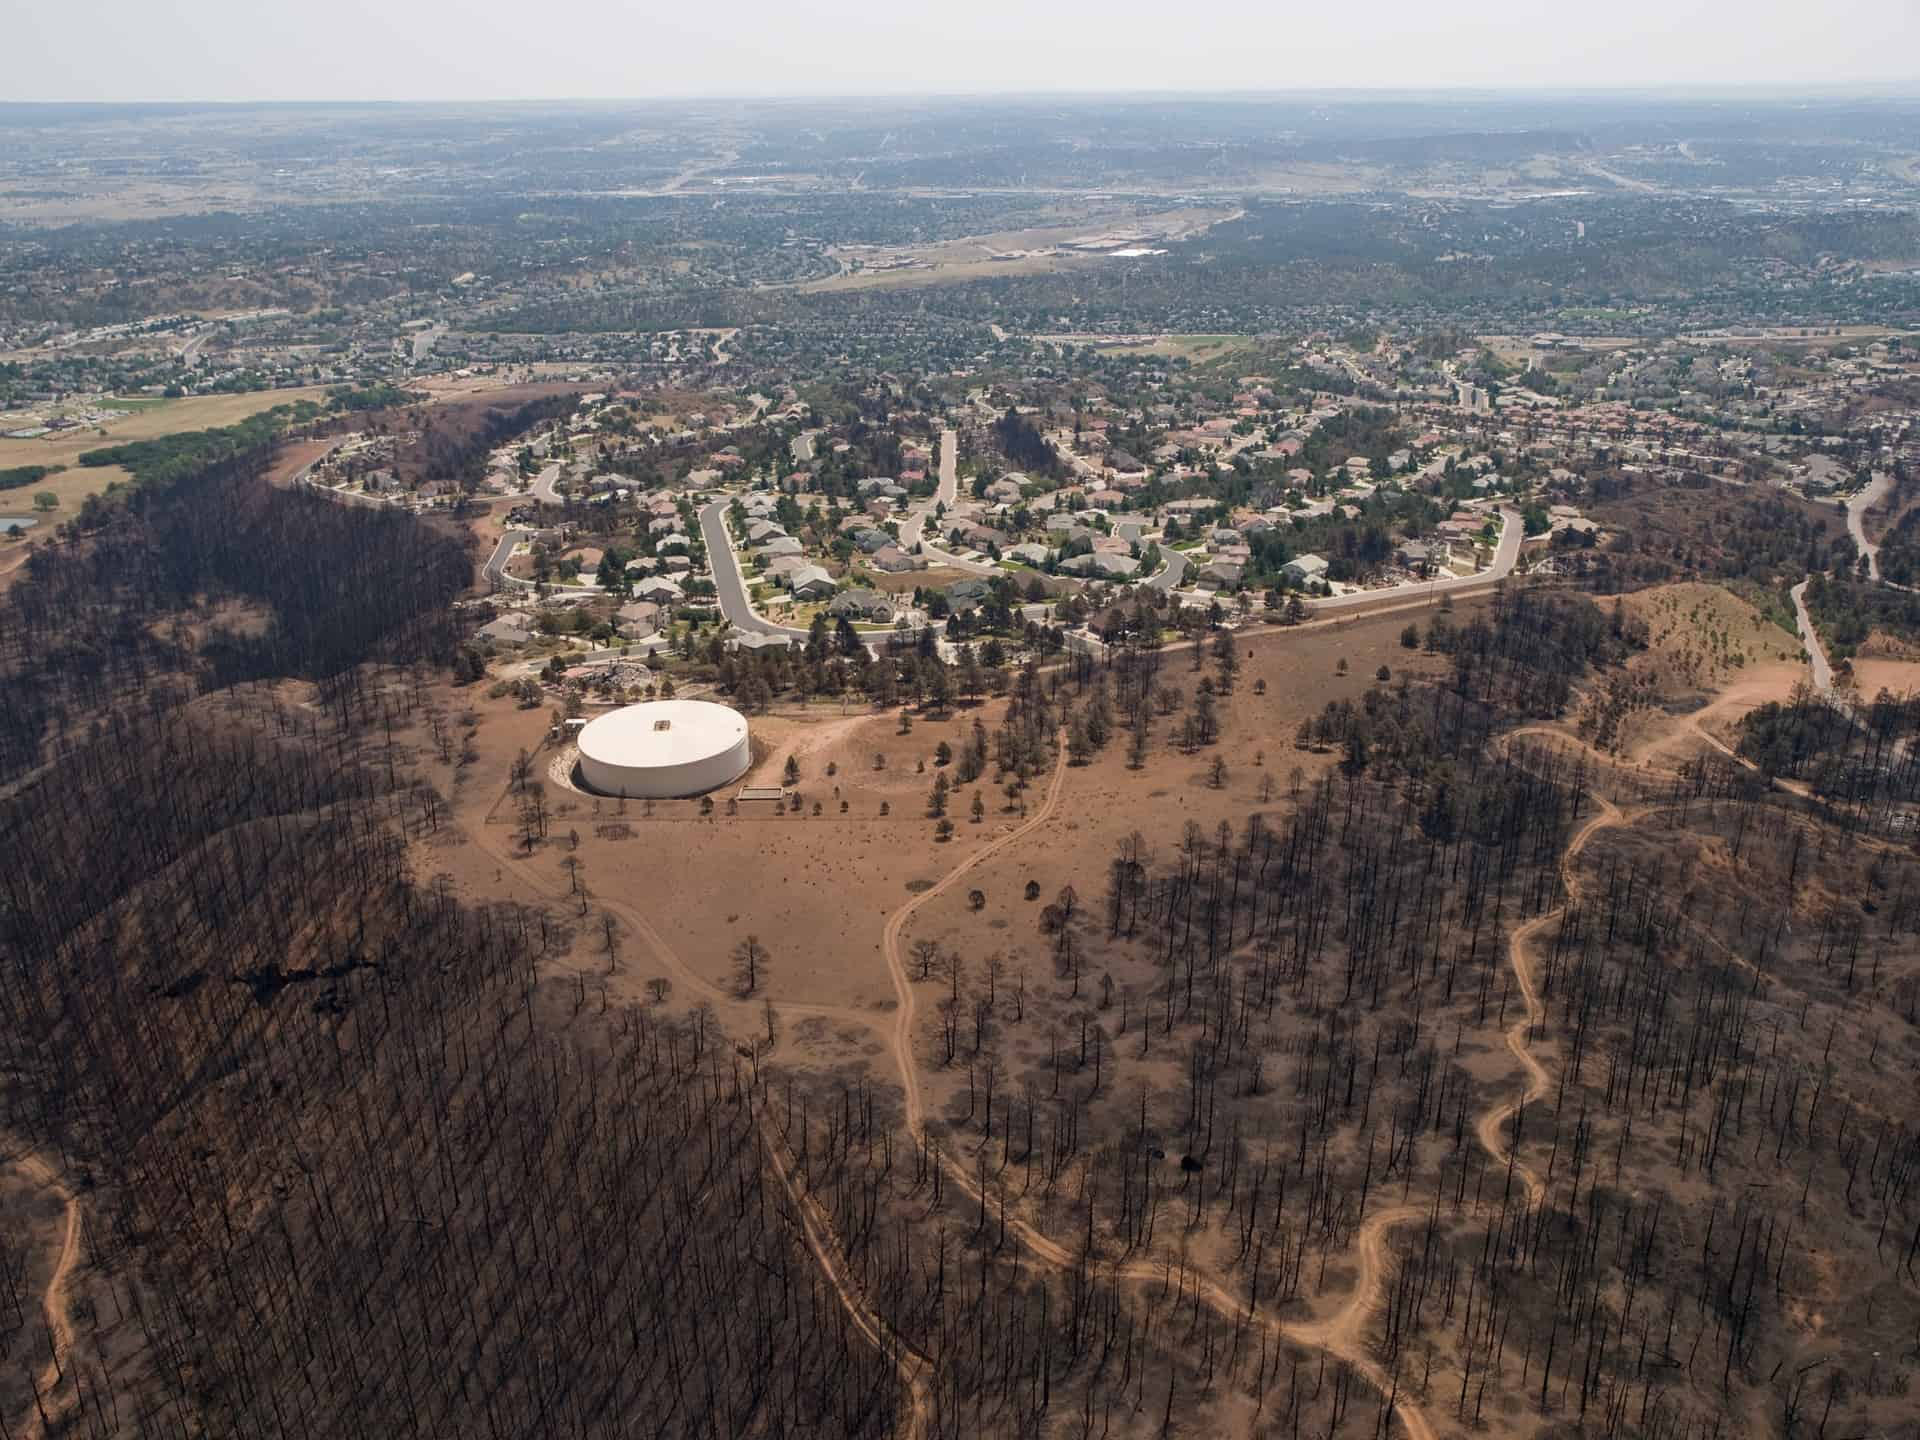 Aerial photograph of Colorado Springs after the Waldo Canyon Fire